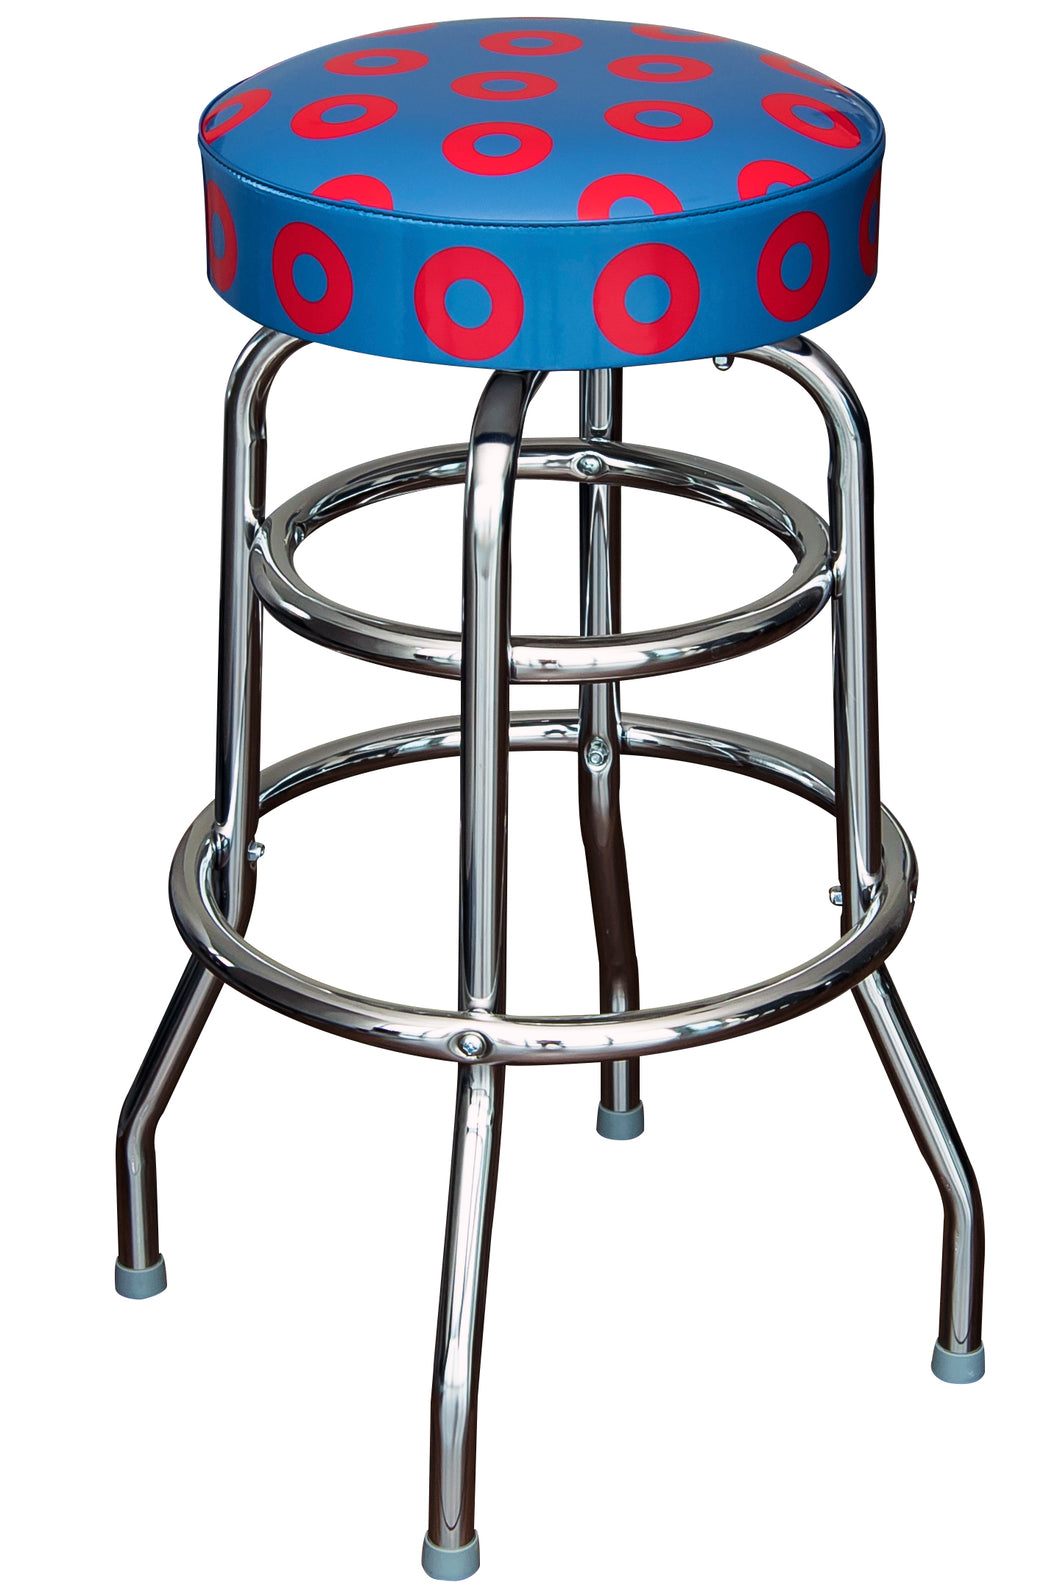 Donut Bar Stool - Blue with Red Donuts